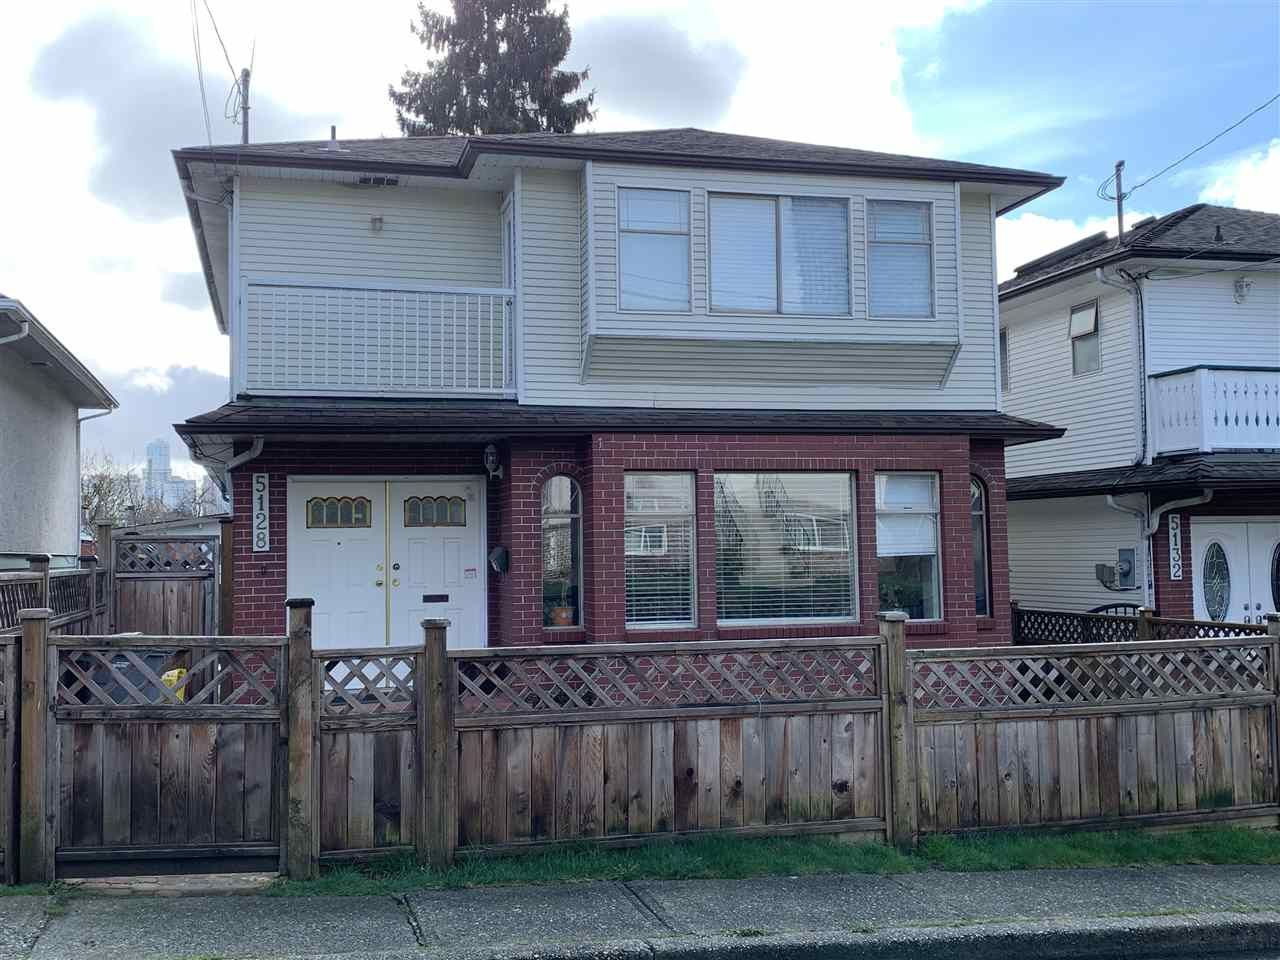 Main Photo: 5128 RUBY Street in Vancouver: Collingwood VE House for sale (Vancouver East)  : MLS®# R2553417